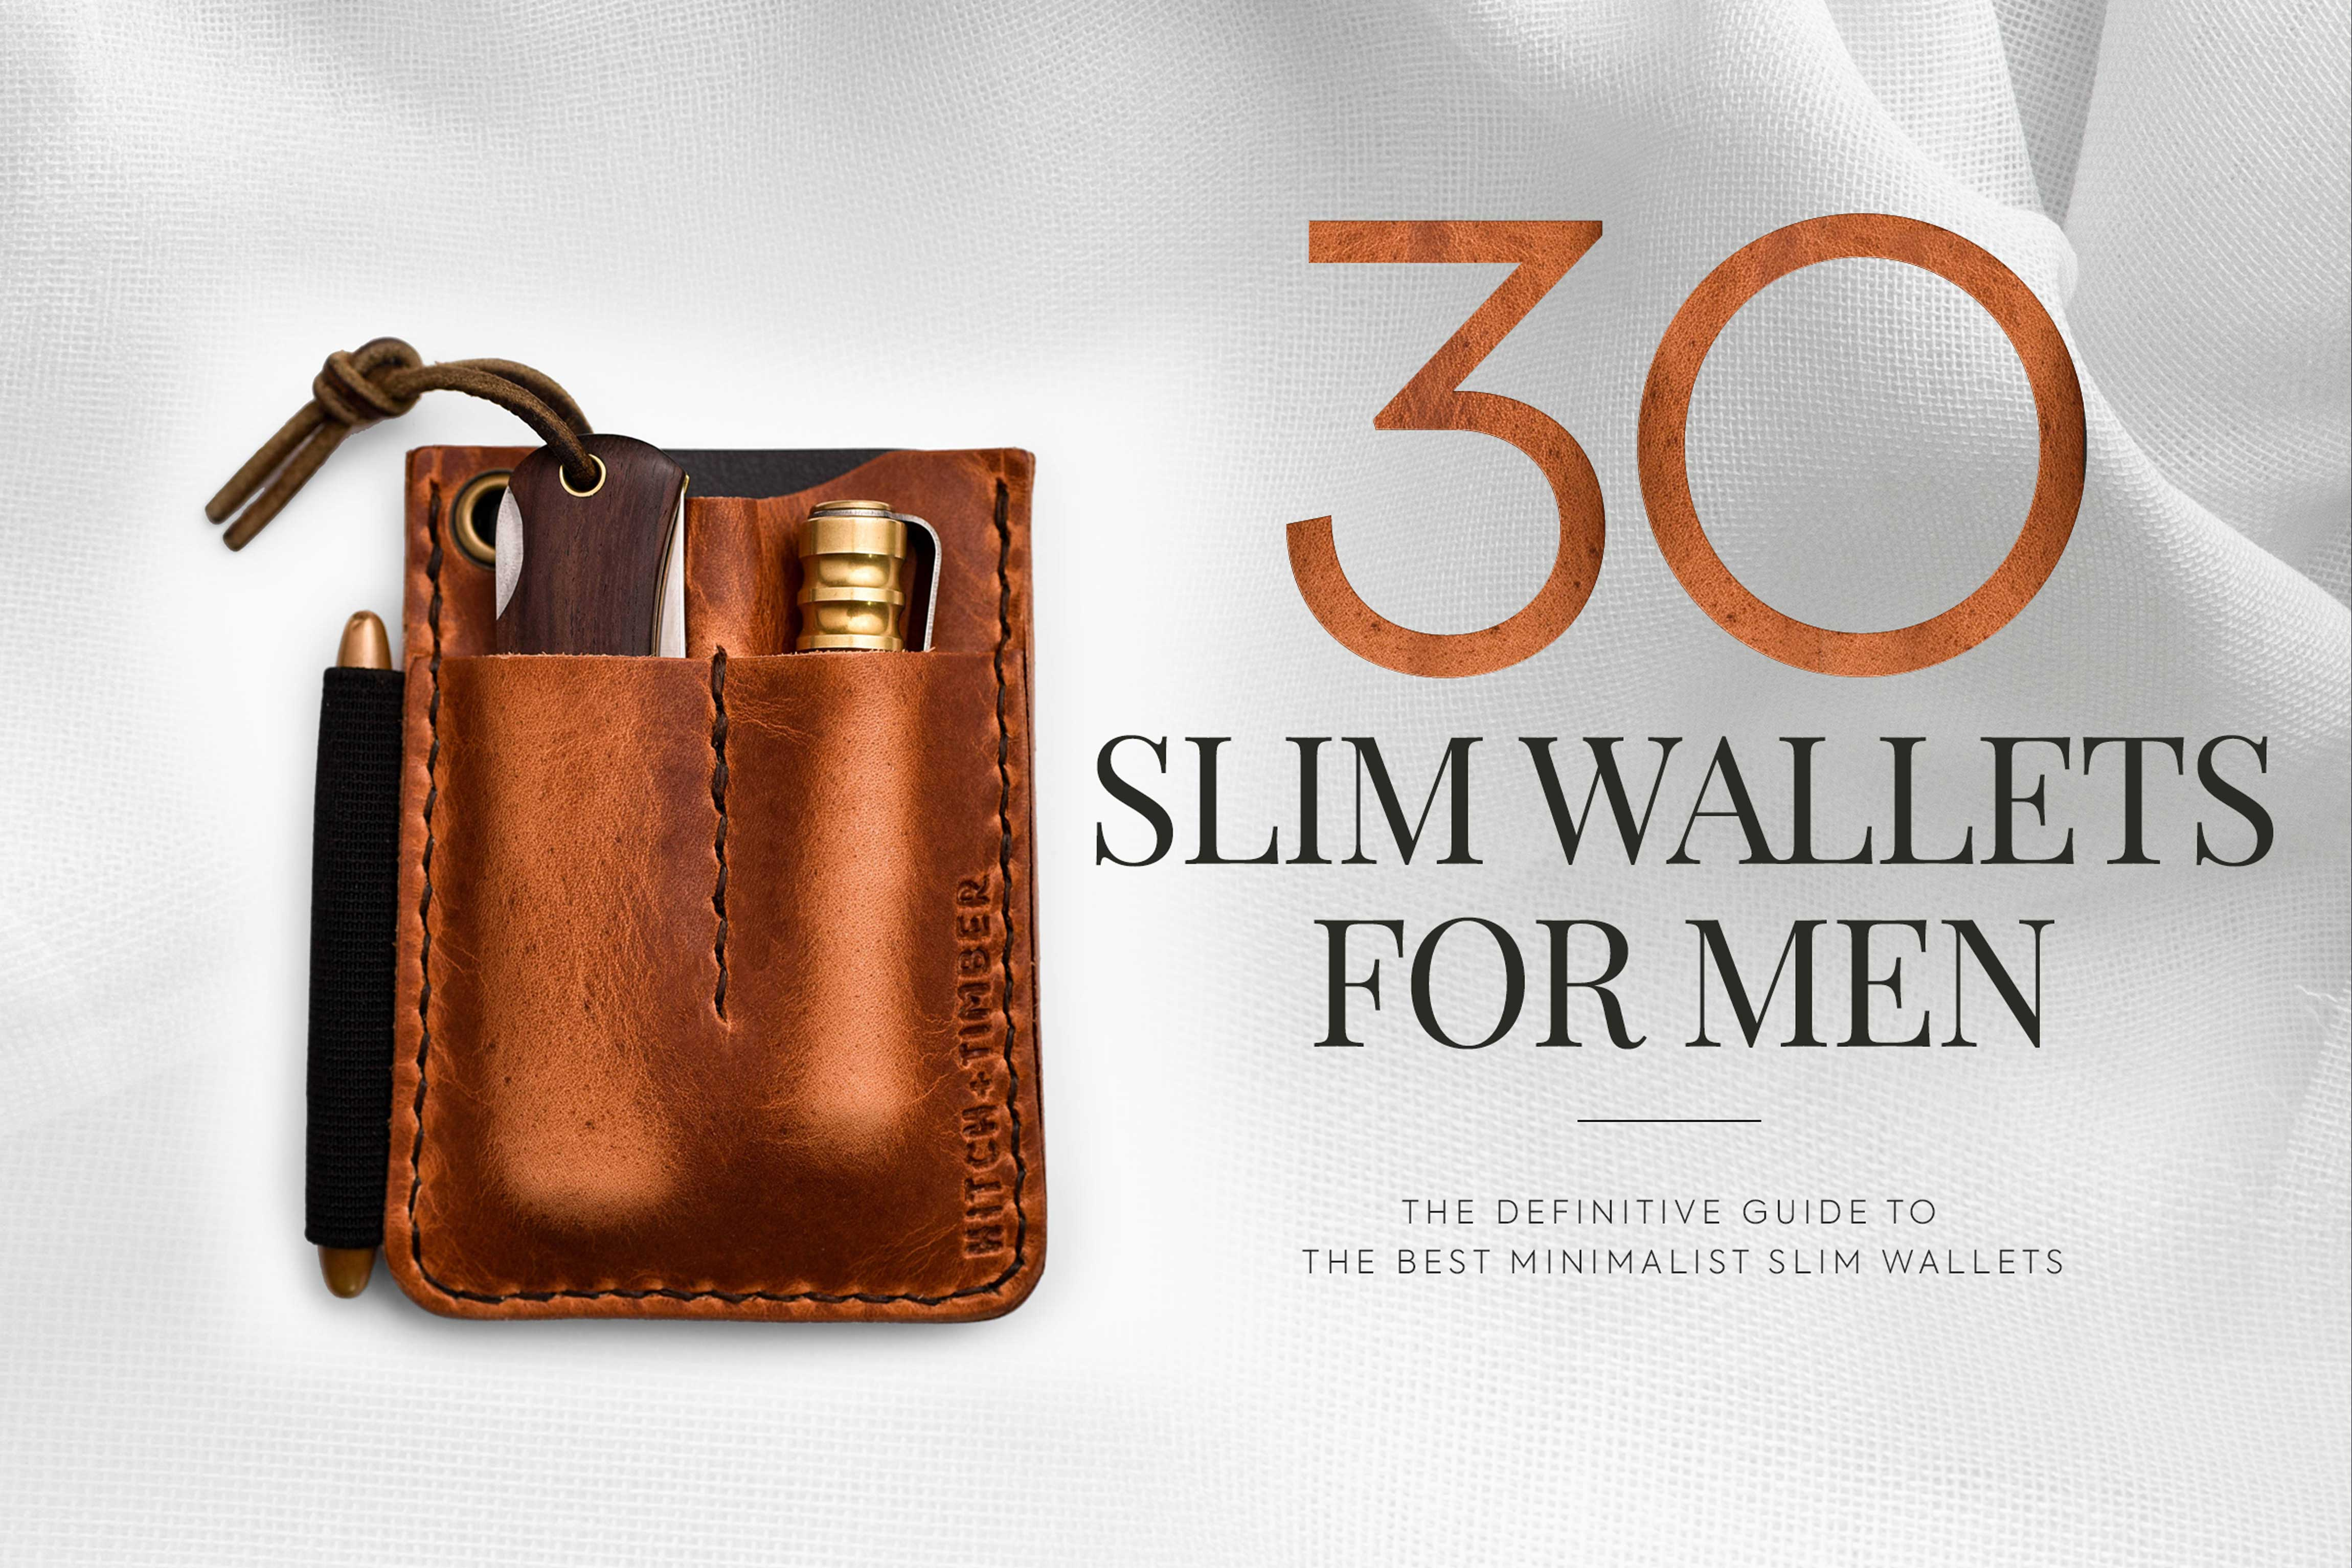 bb48805cb5ba 30 of the Best Minimalist Wallets for Men - SWAGGER Magazine